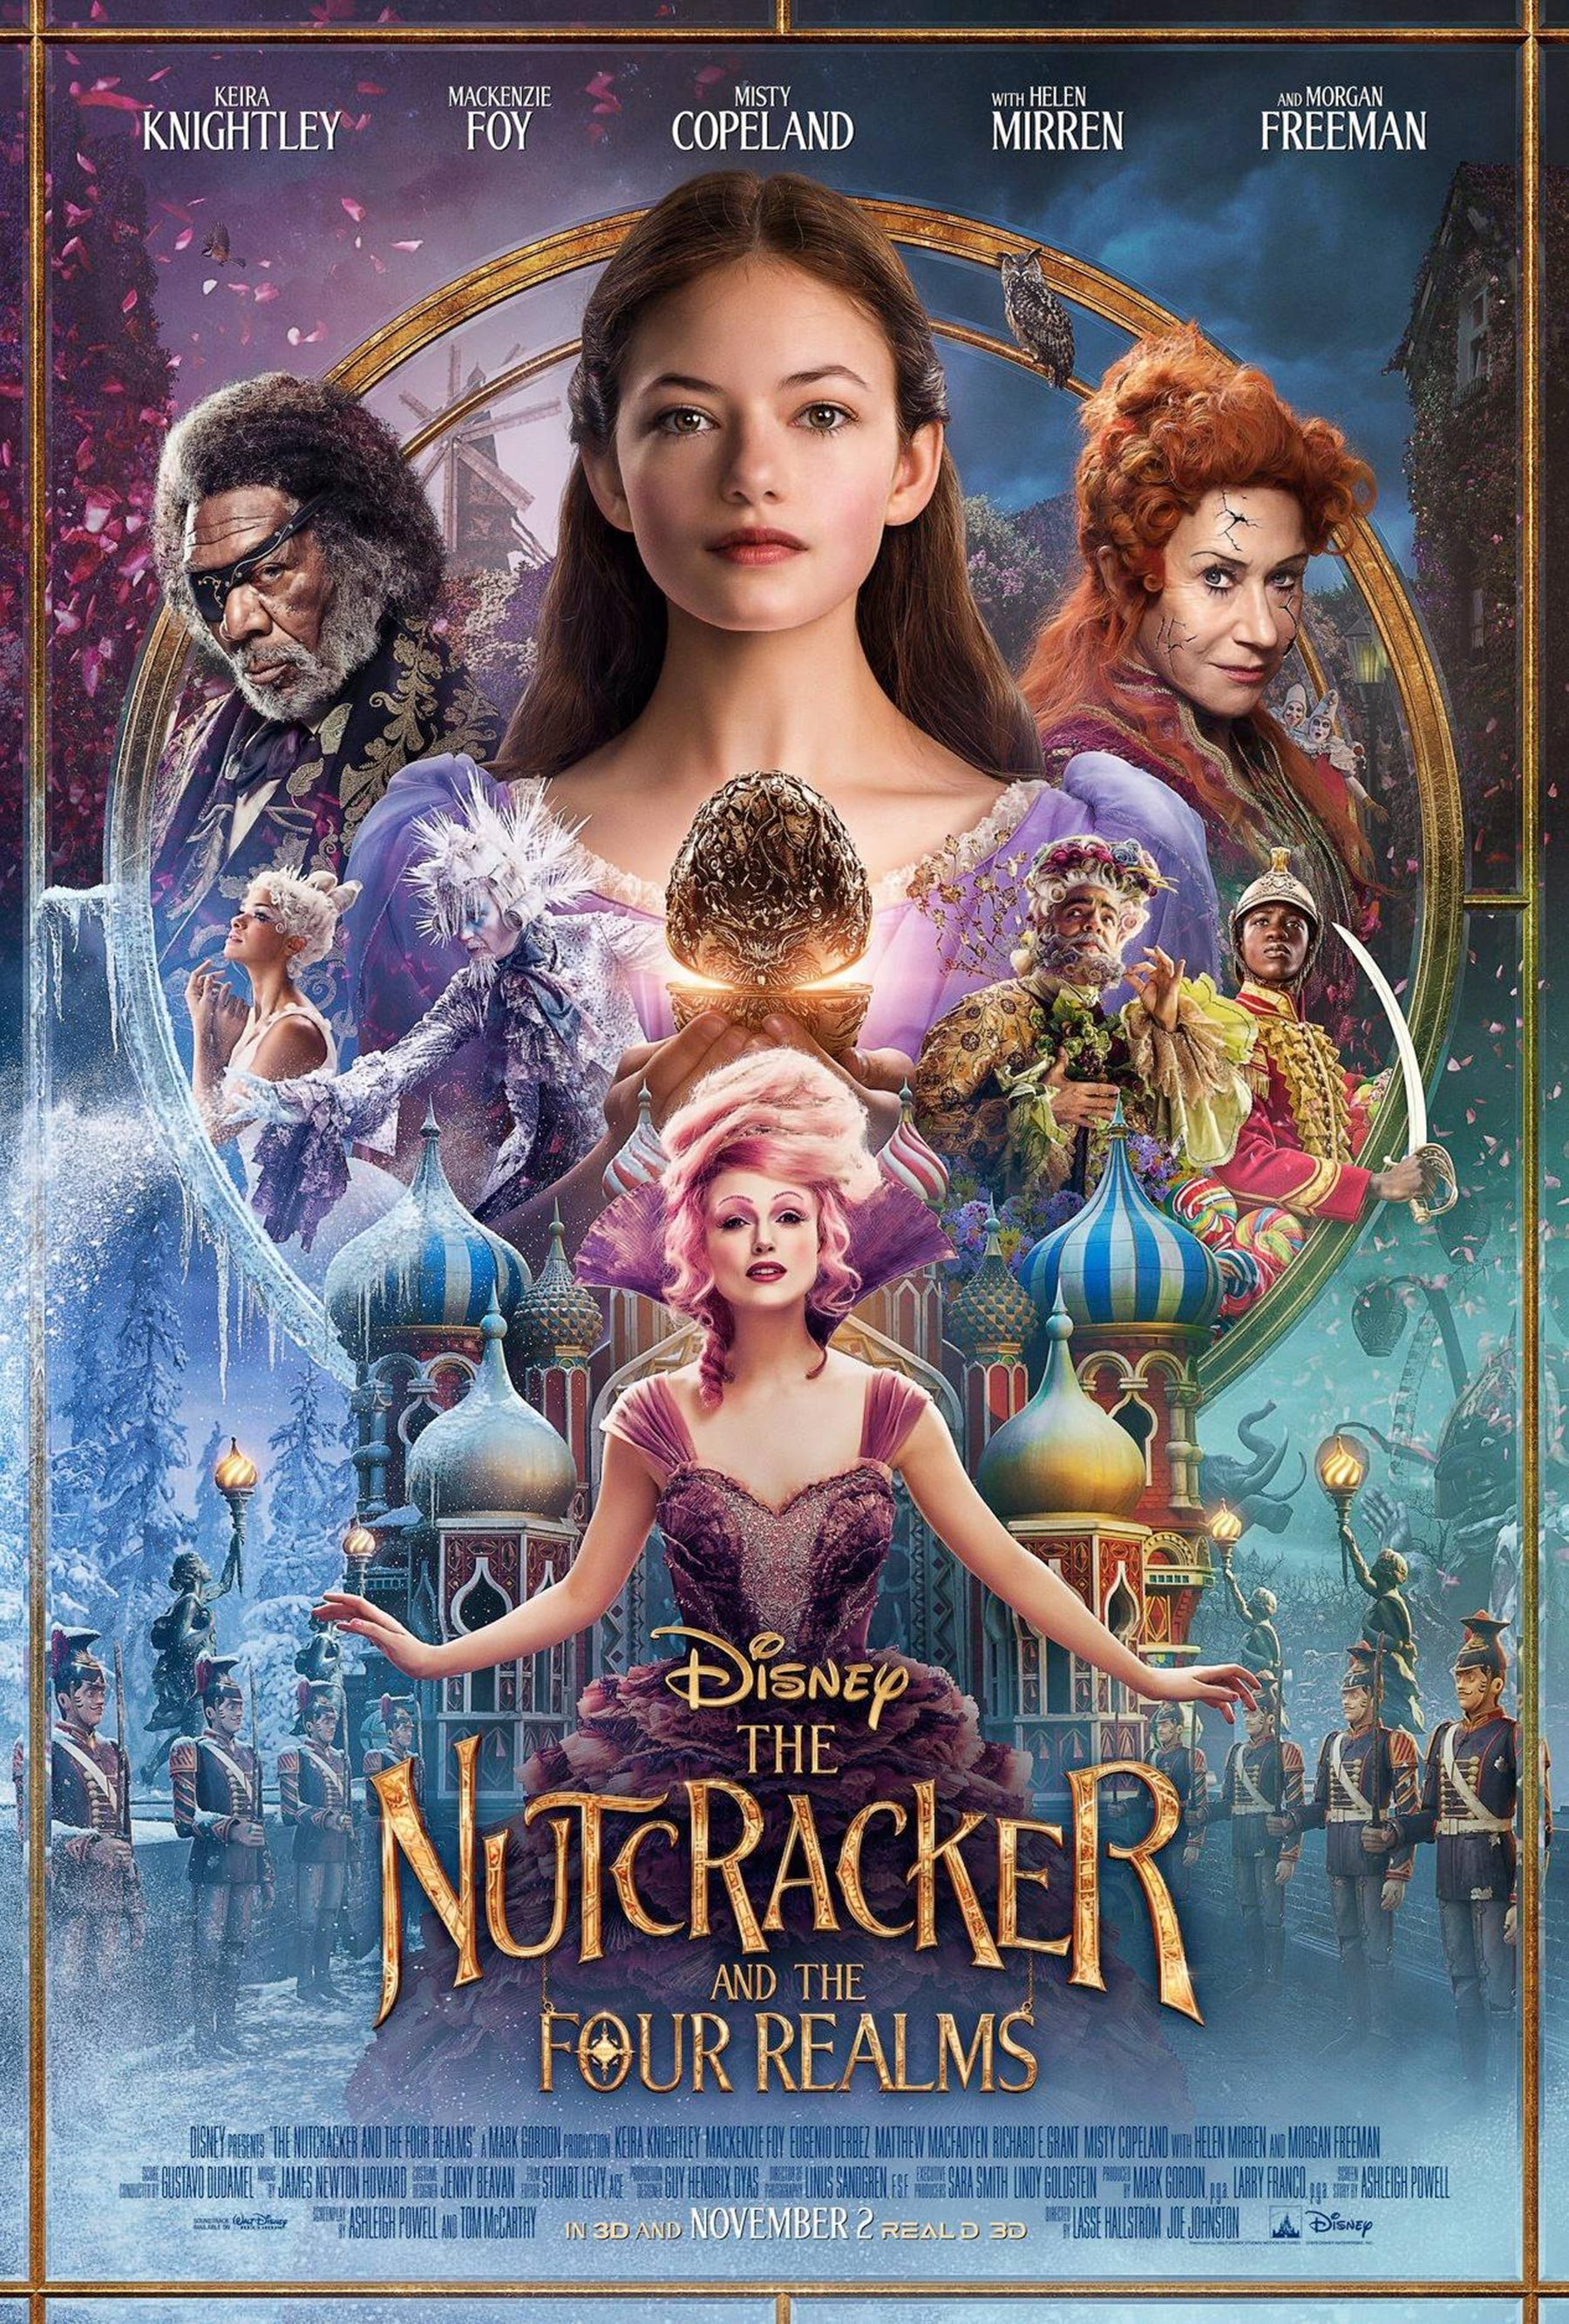 four realms The Nutcracker and the Four Realms